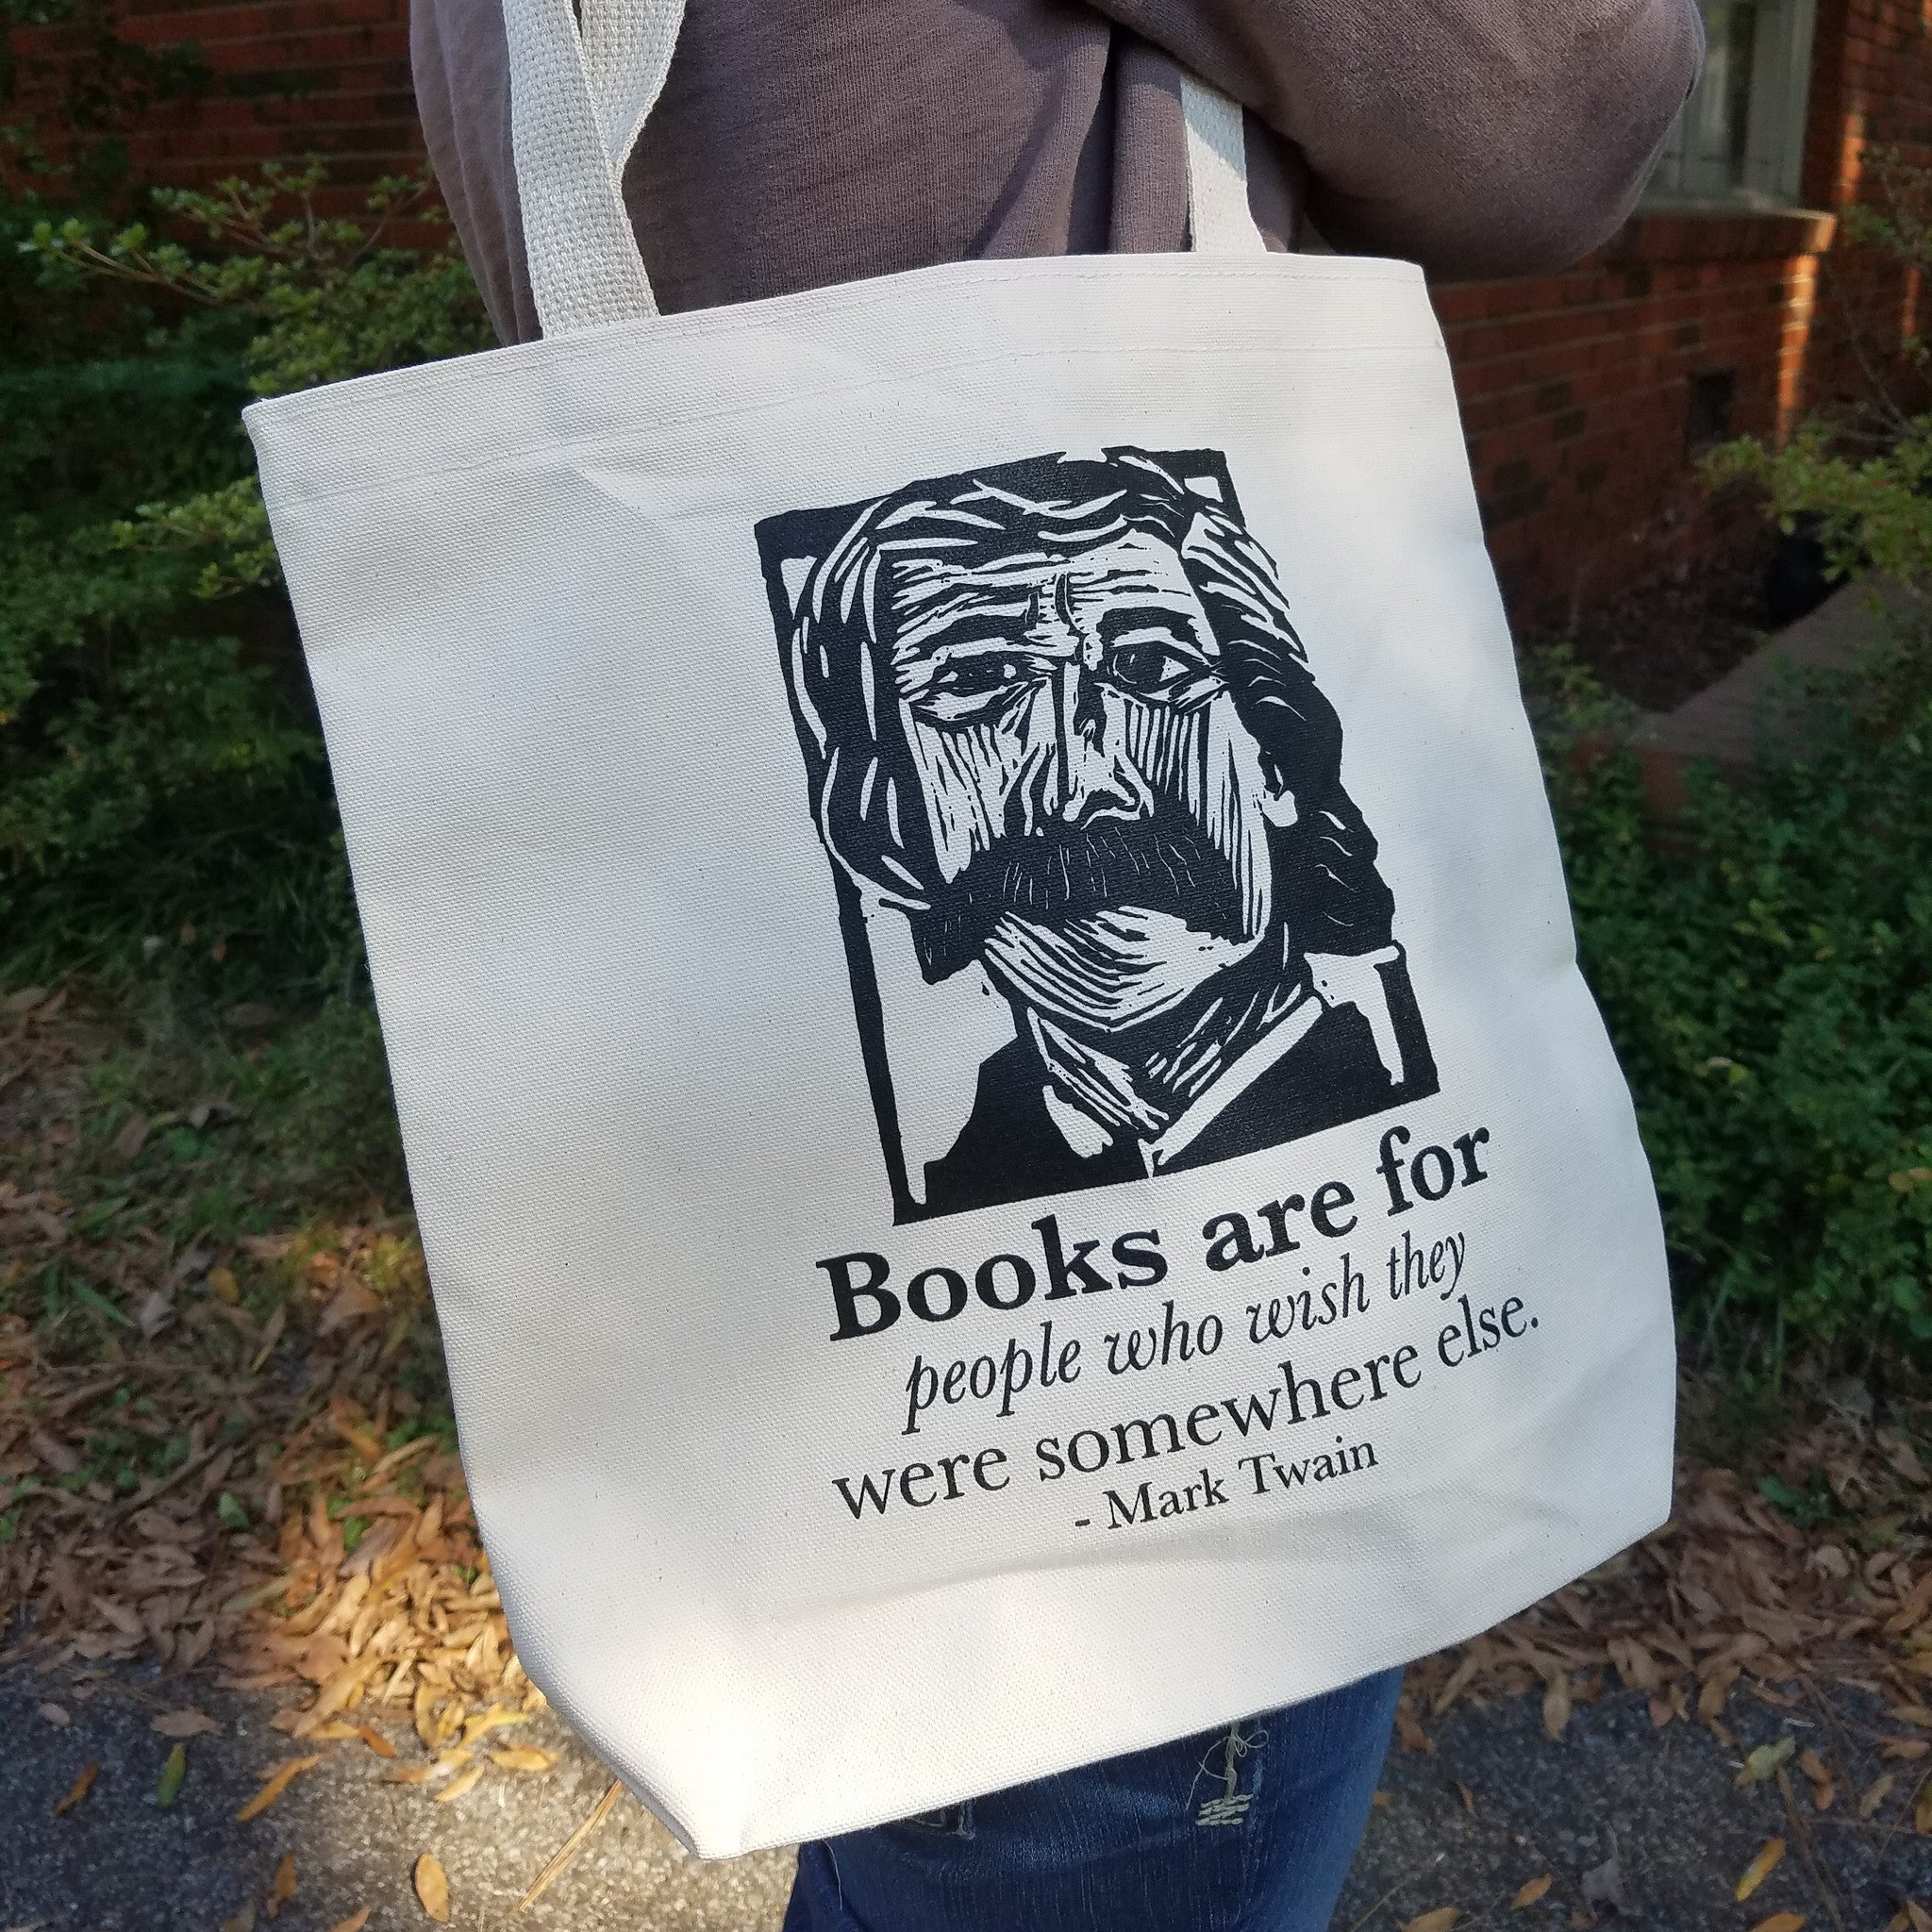 Mark Twain Art Print on totebag with quote Literary gift by Eastgrove Studio